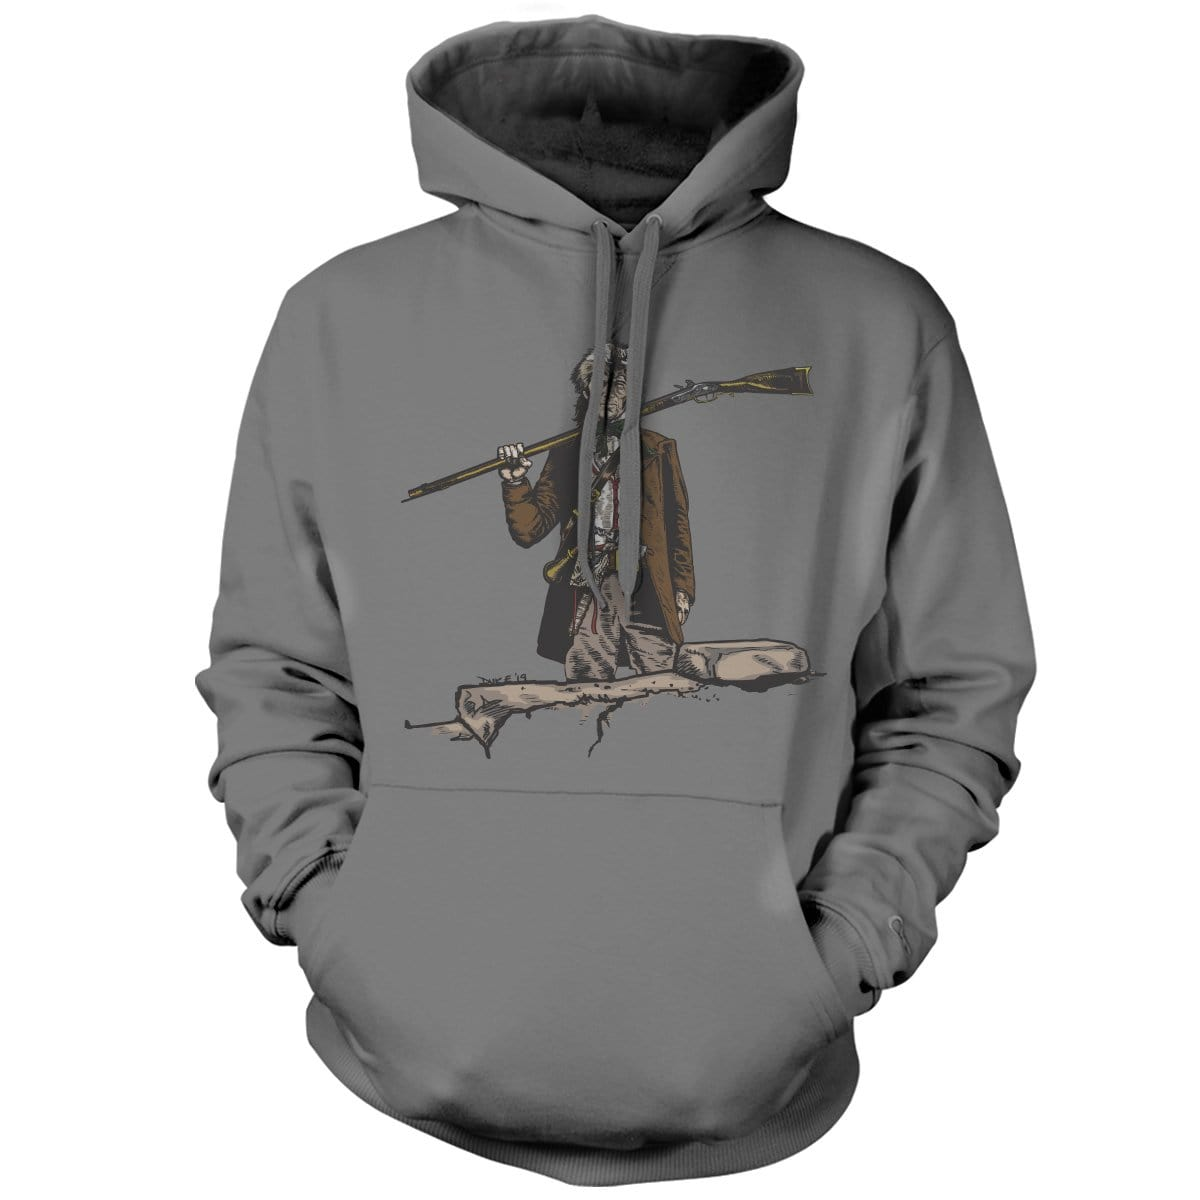 Original Pipe Hitter - Davy Hoodie - Grey - Hoodies - Pipe Hitters Union